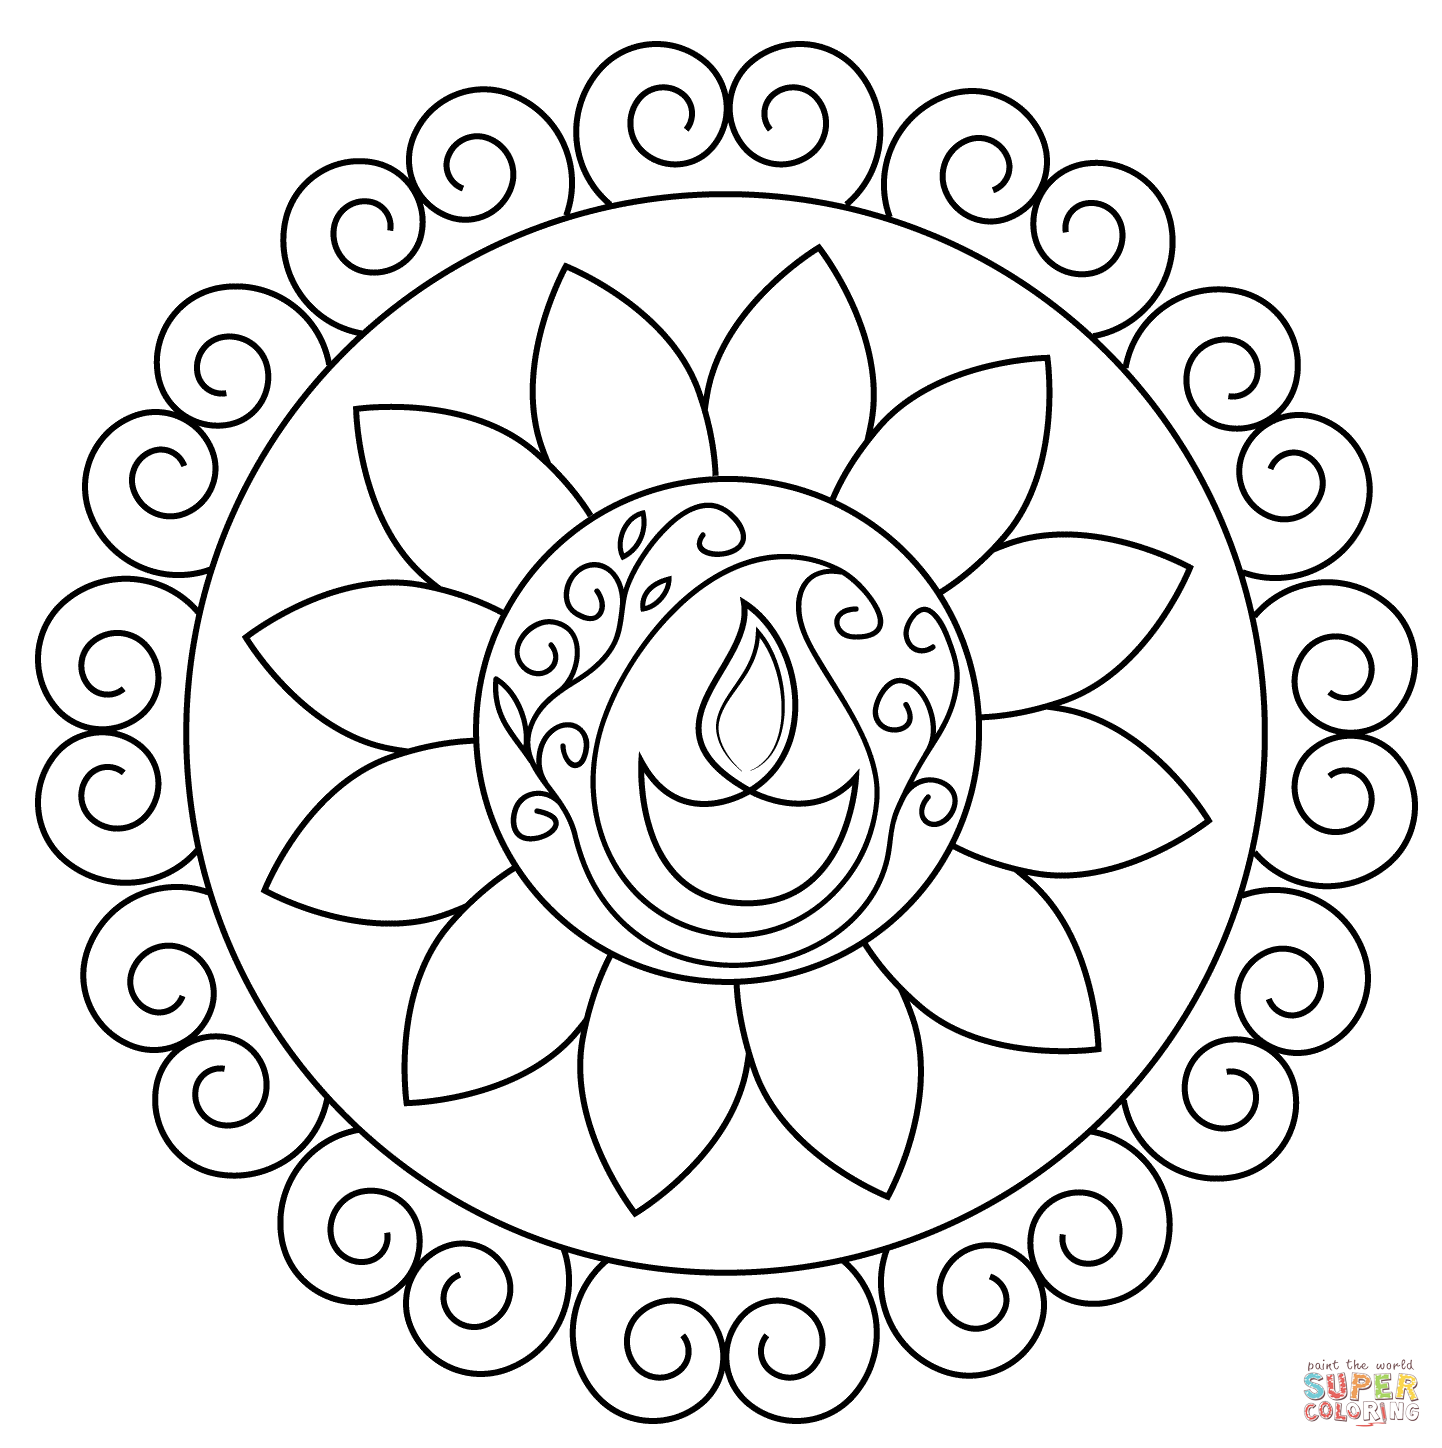 rangoli coloring pages for diwali pictures | Diwali Rangoli Coloring Pages | Happy Diwali | Pinterest ...